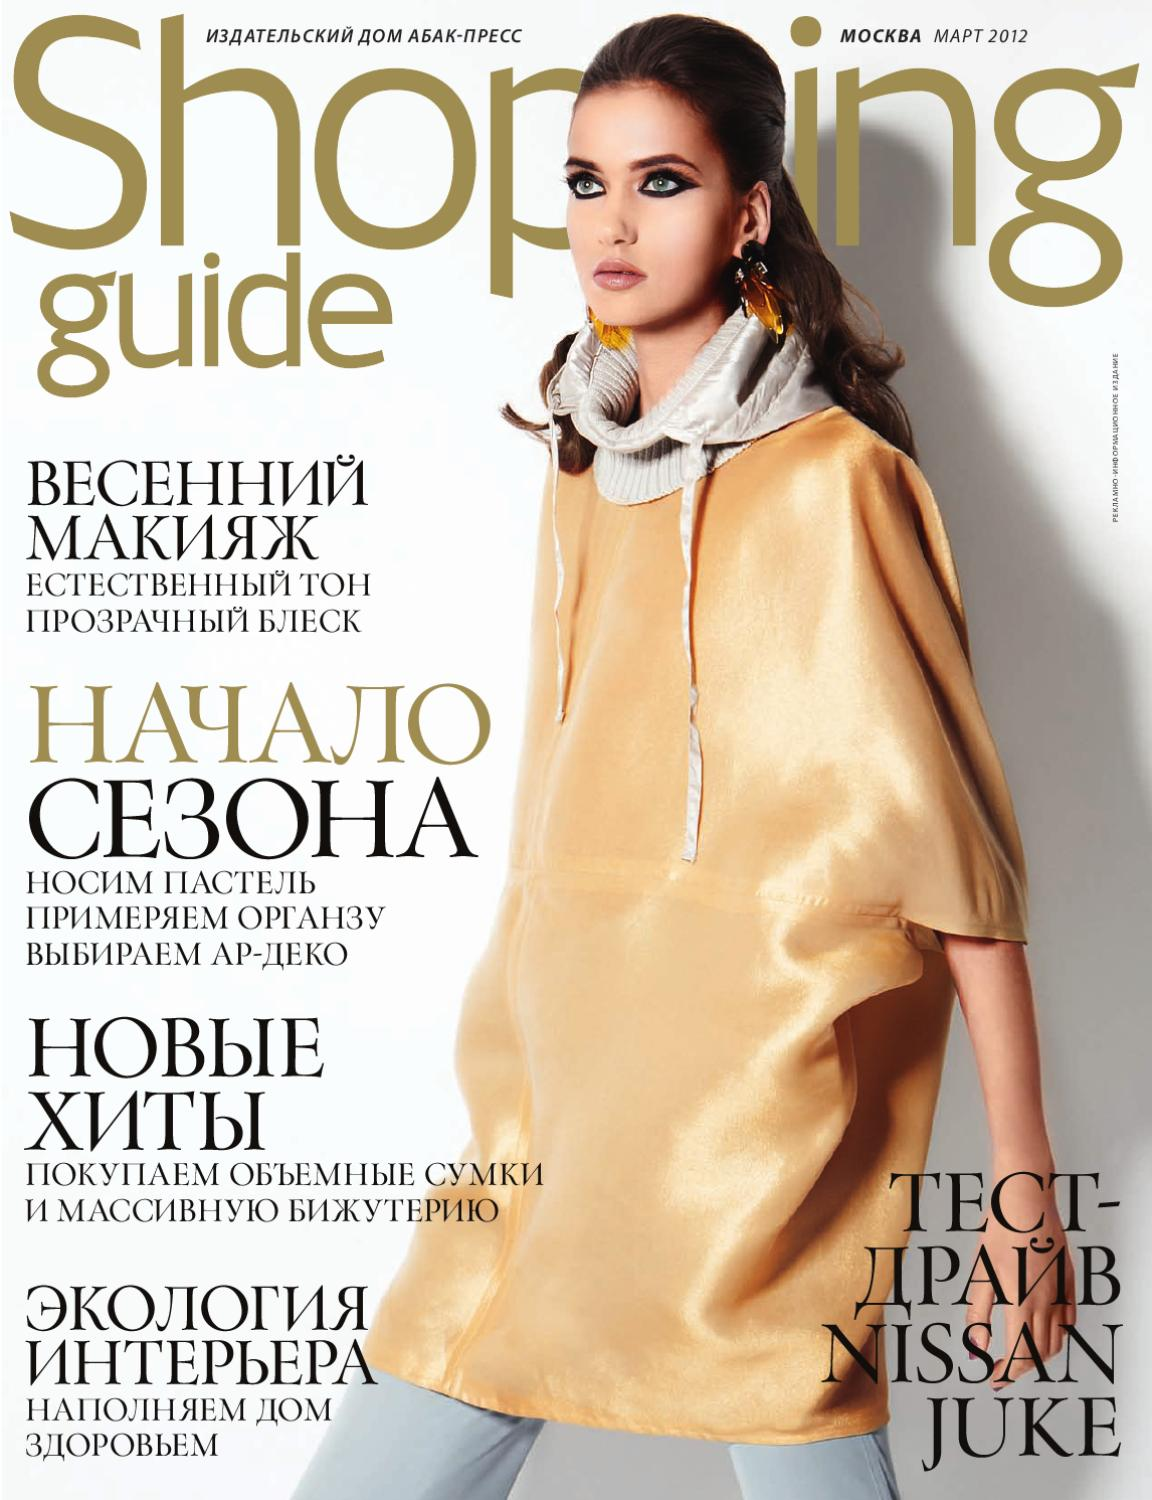 c695719bf5d5 Shopping Guide 2012-03 by ABAK-Press - issuu